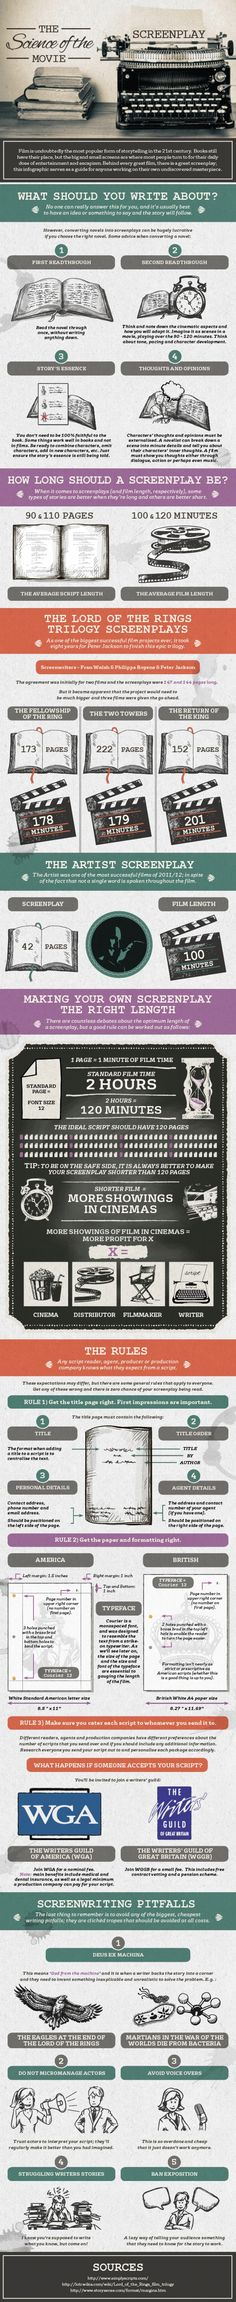 Fast Company Screenwriting Infographic